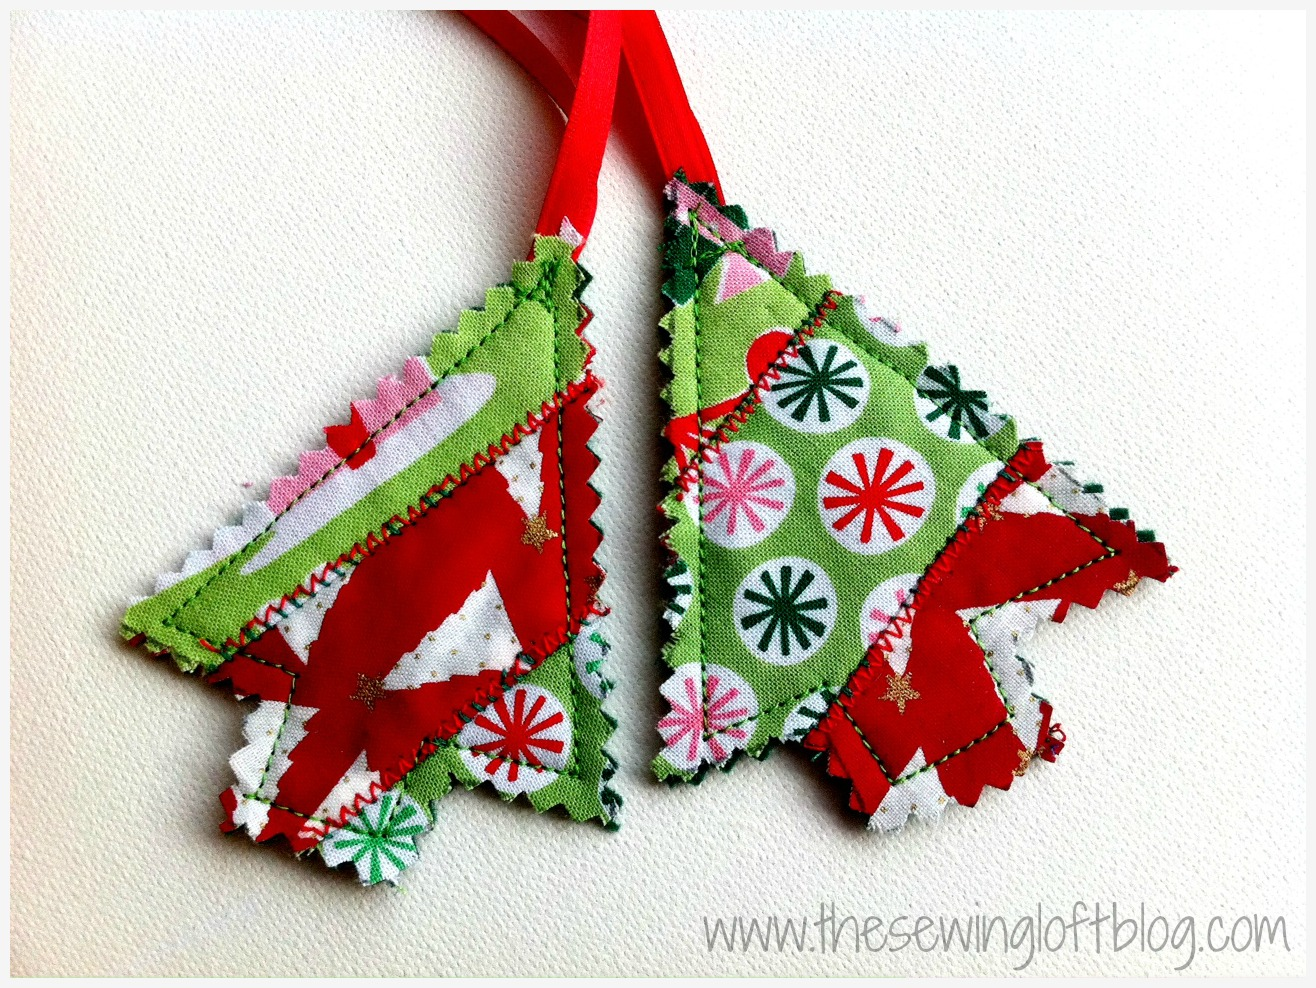 How To Make Quilted Christmas Ornaments Part - 33: Monday ... : quilt ornaments - Adamdwight.com